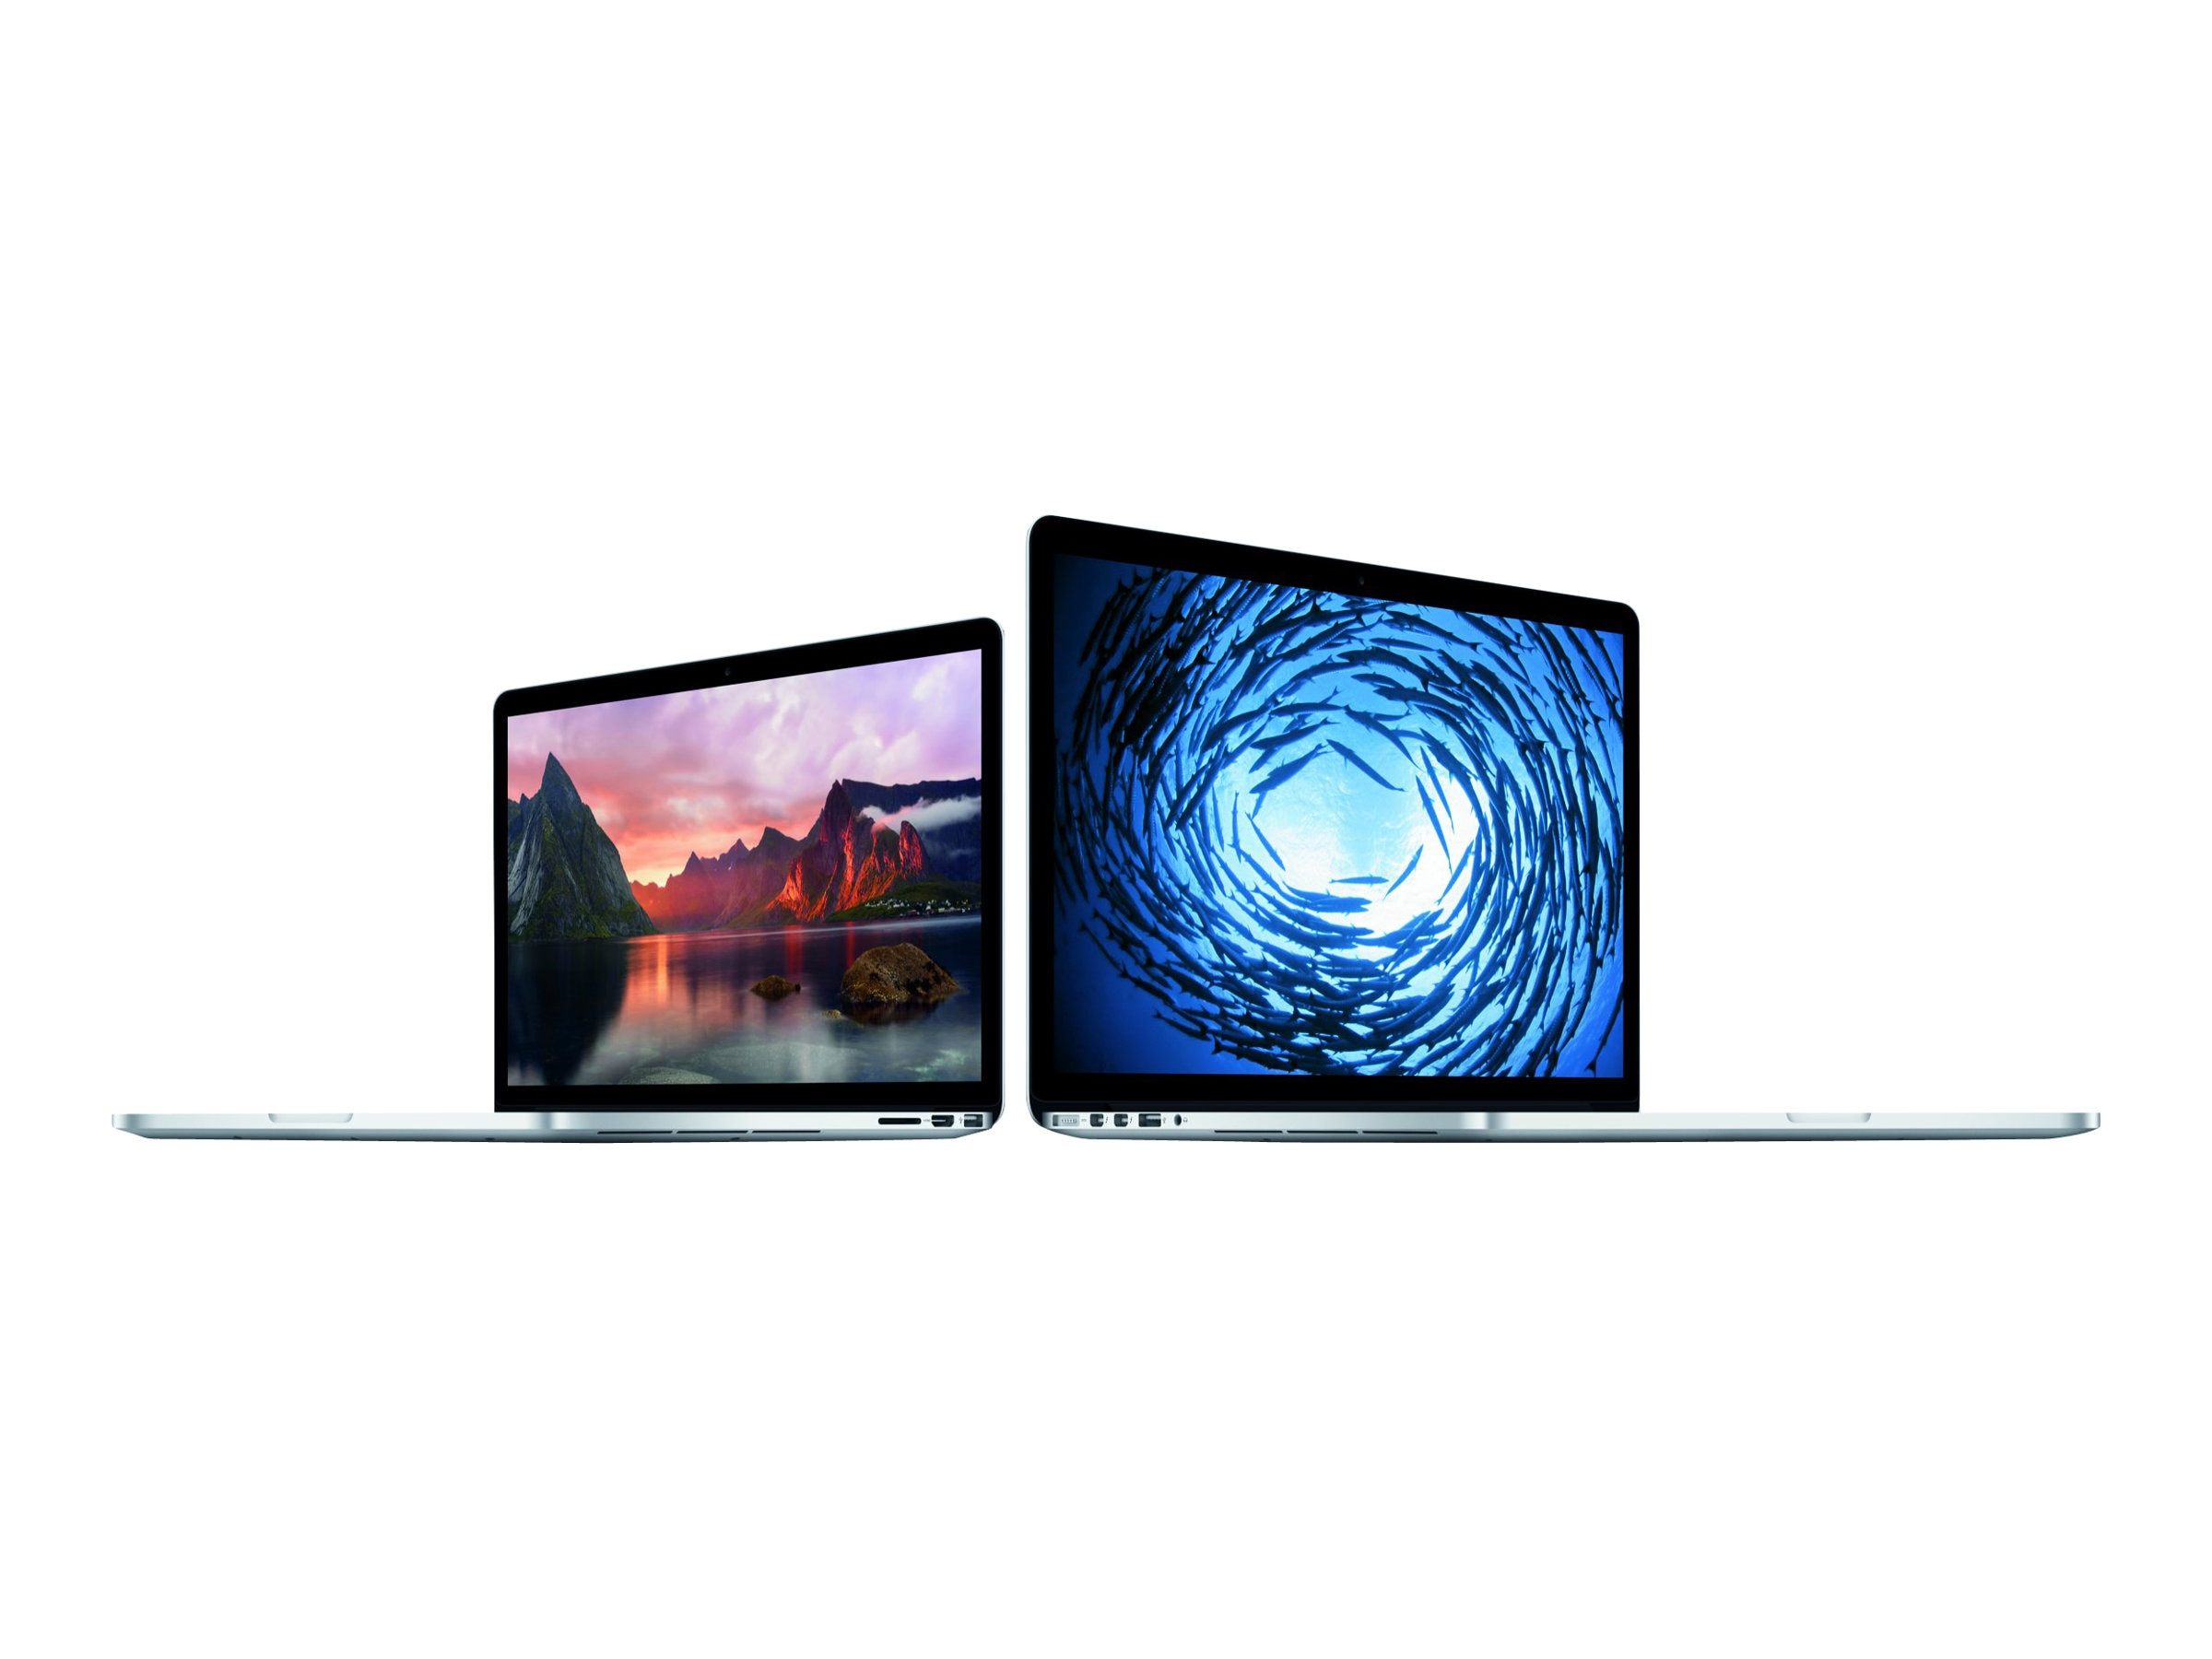 Apple MacBook Pro 13 Retina Display 2.7GHz Core i5 8GB 256GB Flash Iris 6100, MF840LL/A, 18793918, Notebooks - MacBook Pro 13